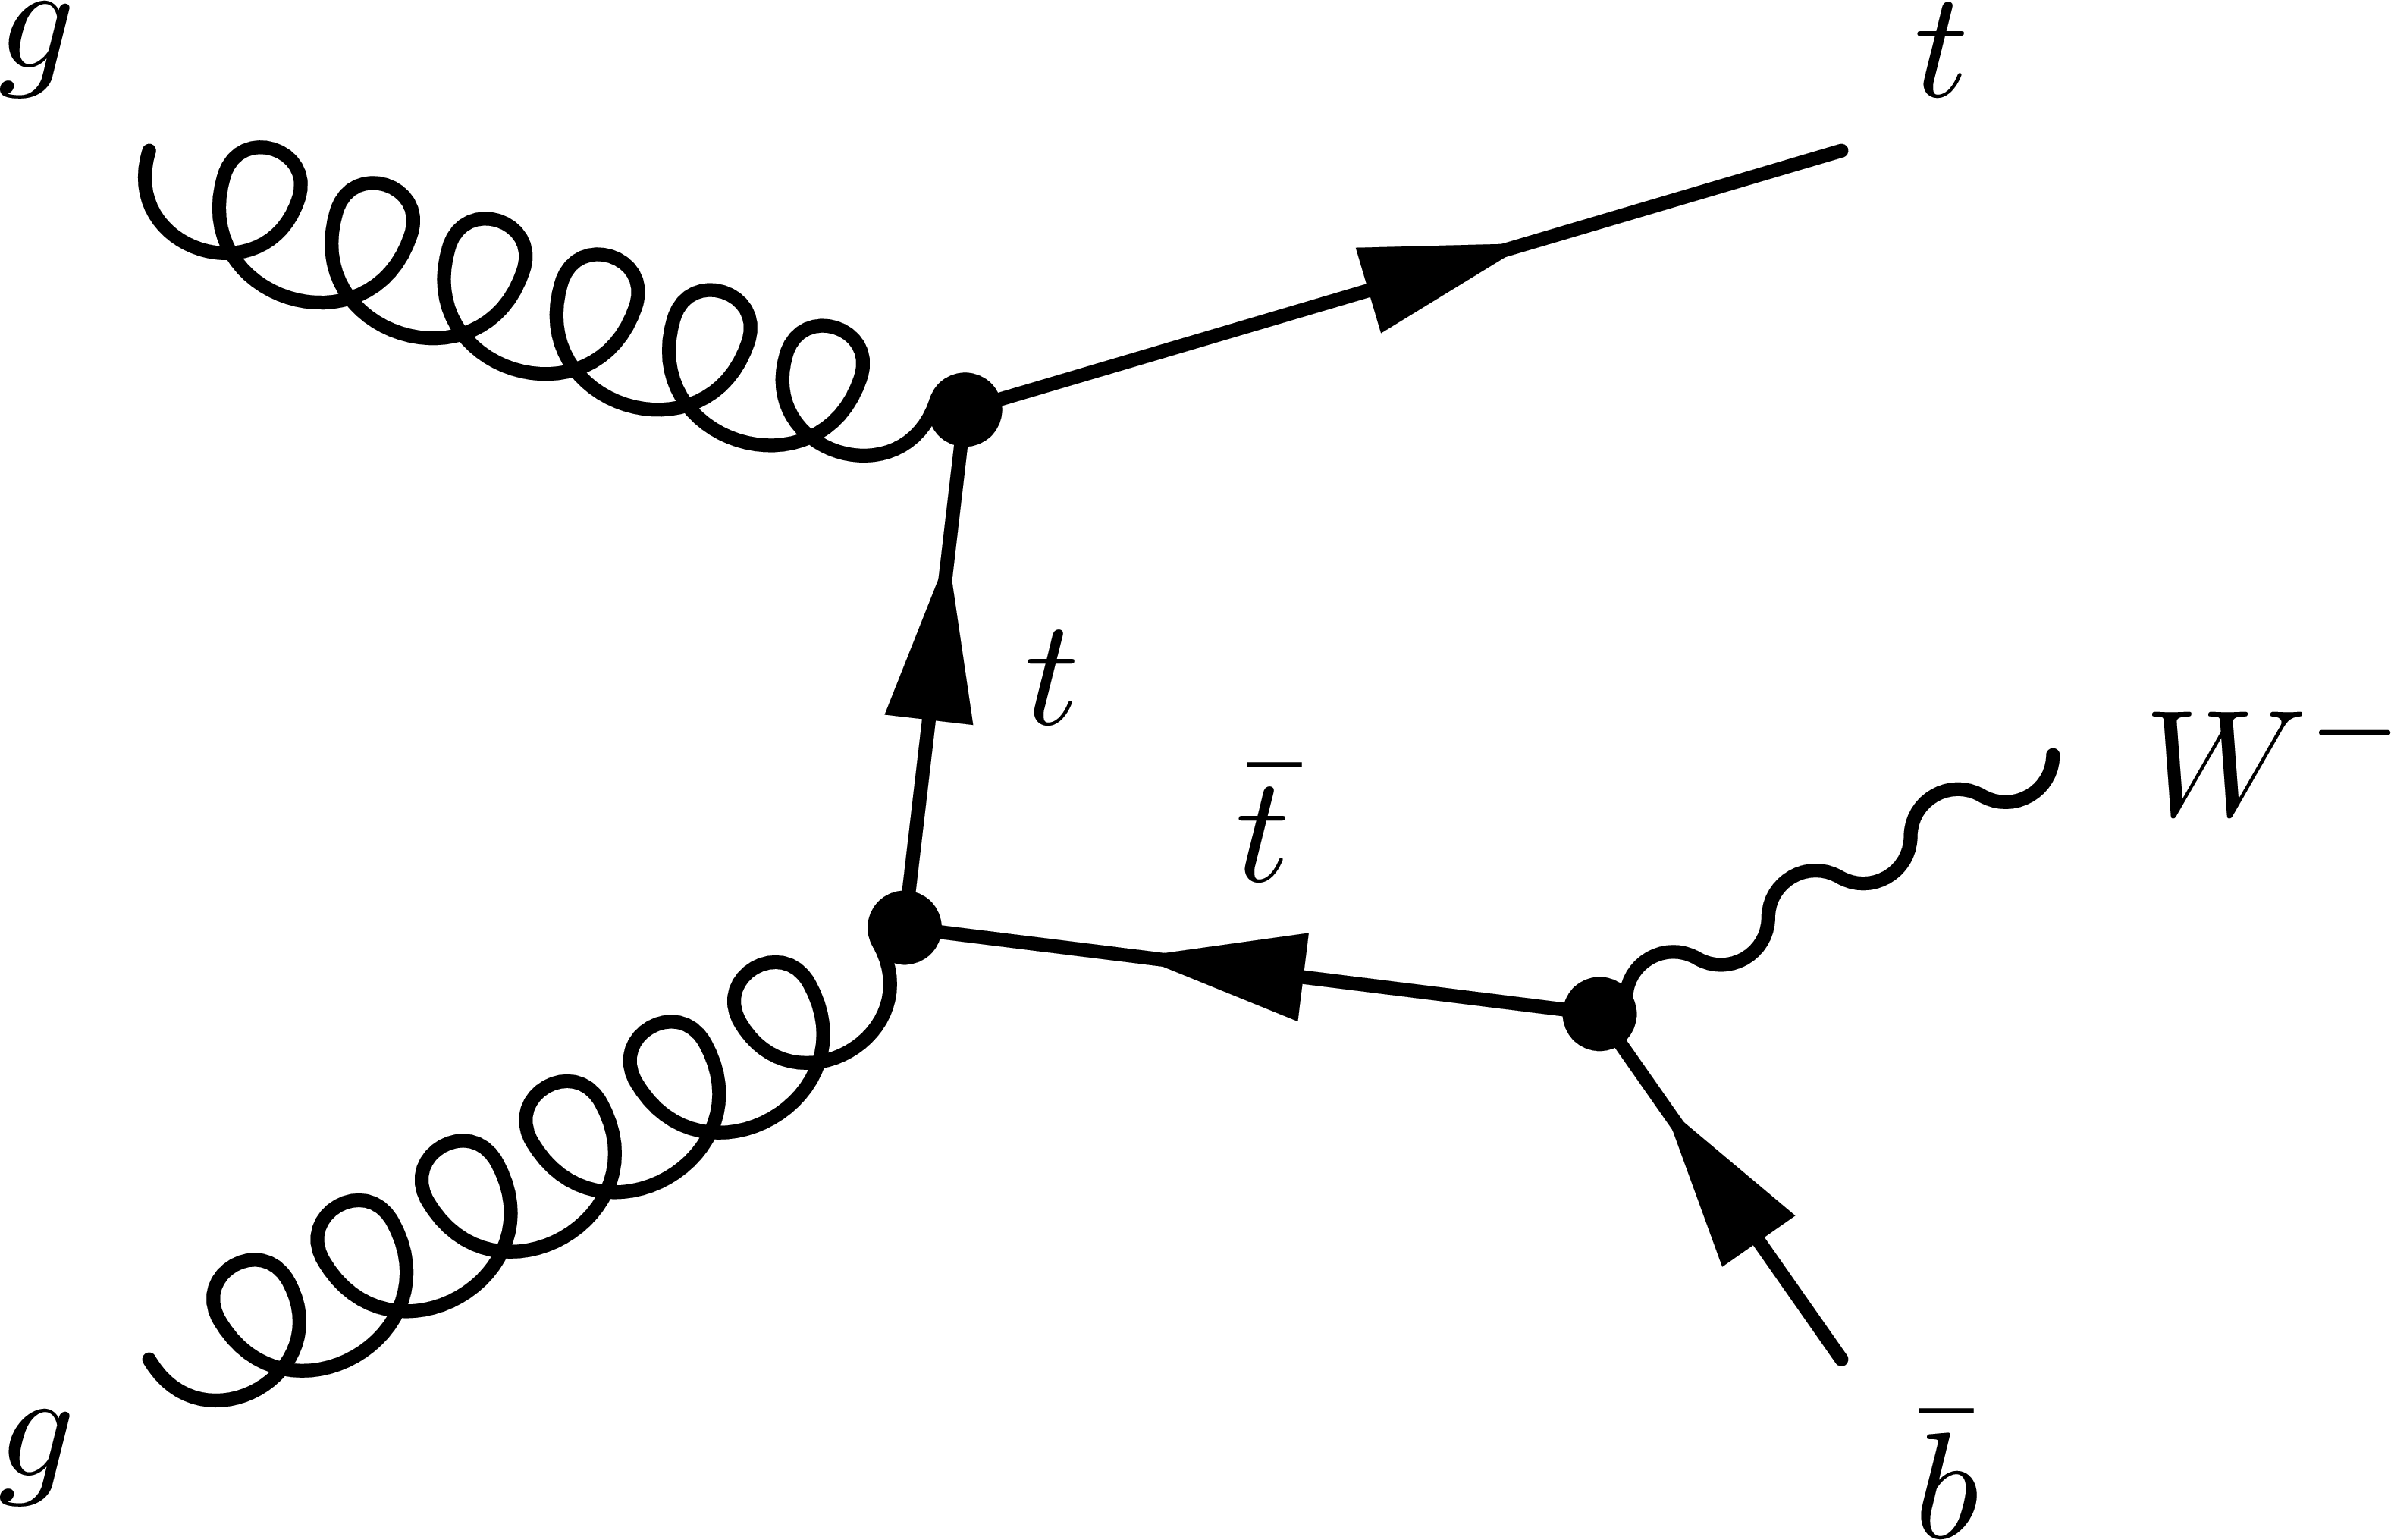 Feynman diagram of next-to-leading order tW production